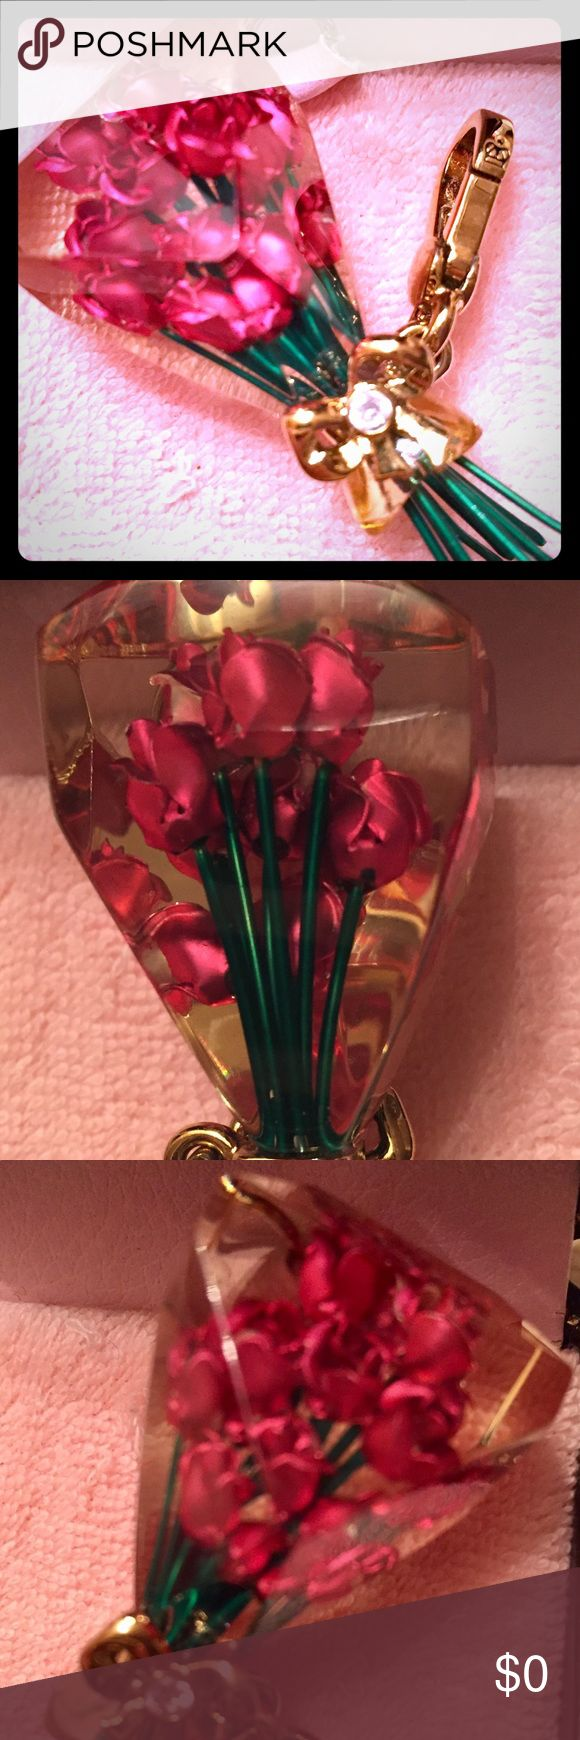 Juicy Couture Charm Juicy Couture 🌹 Bouchée of Roses. This is one of the bigger charms and has tons of detail. The roses are encased in plexiglass and has a 💎 stone in the bow. Stems hang out and are flexible. Not for sale, just sharing from my personal collection. Juicy Couture Jewelry